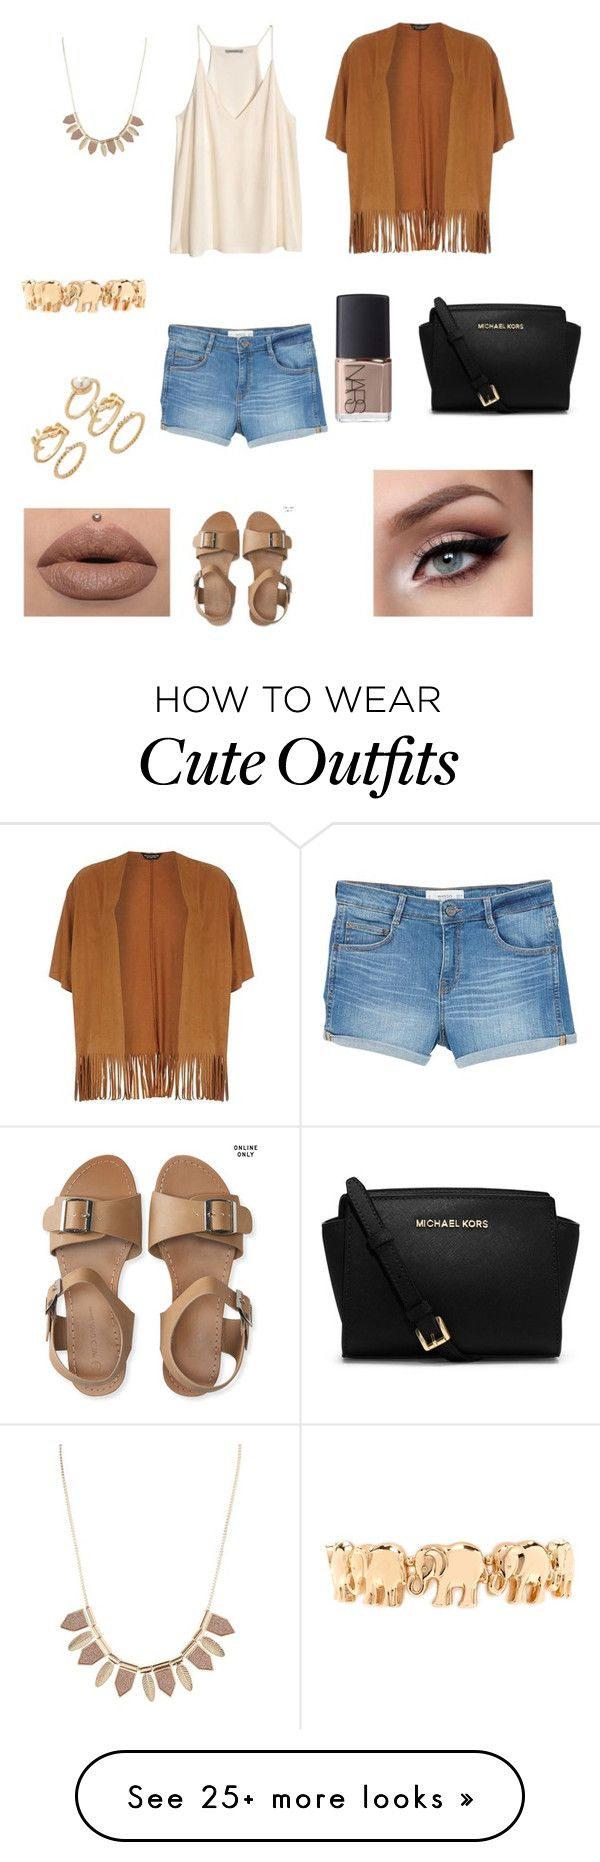 """""""Cute summer outfit"""" by princessrena on Polyvore featuring Dorothy Perkins, H&M, MANGO, Charlotte Russe, Aéropostale, Forever 21, NARS Cosmetics and Michael Kors"""